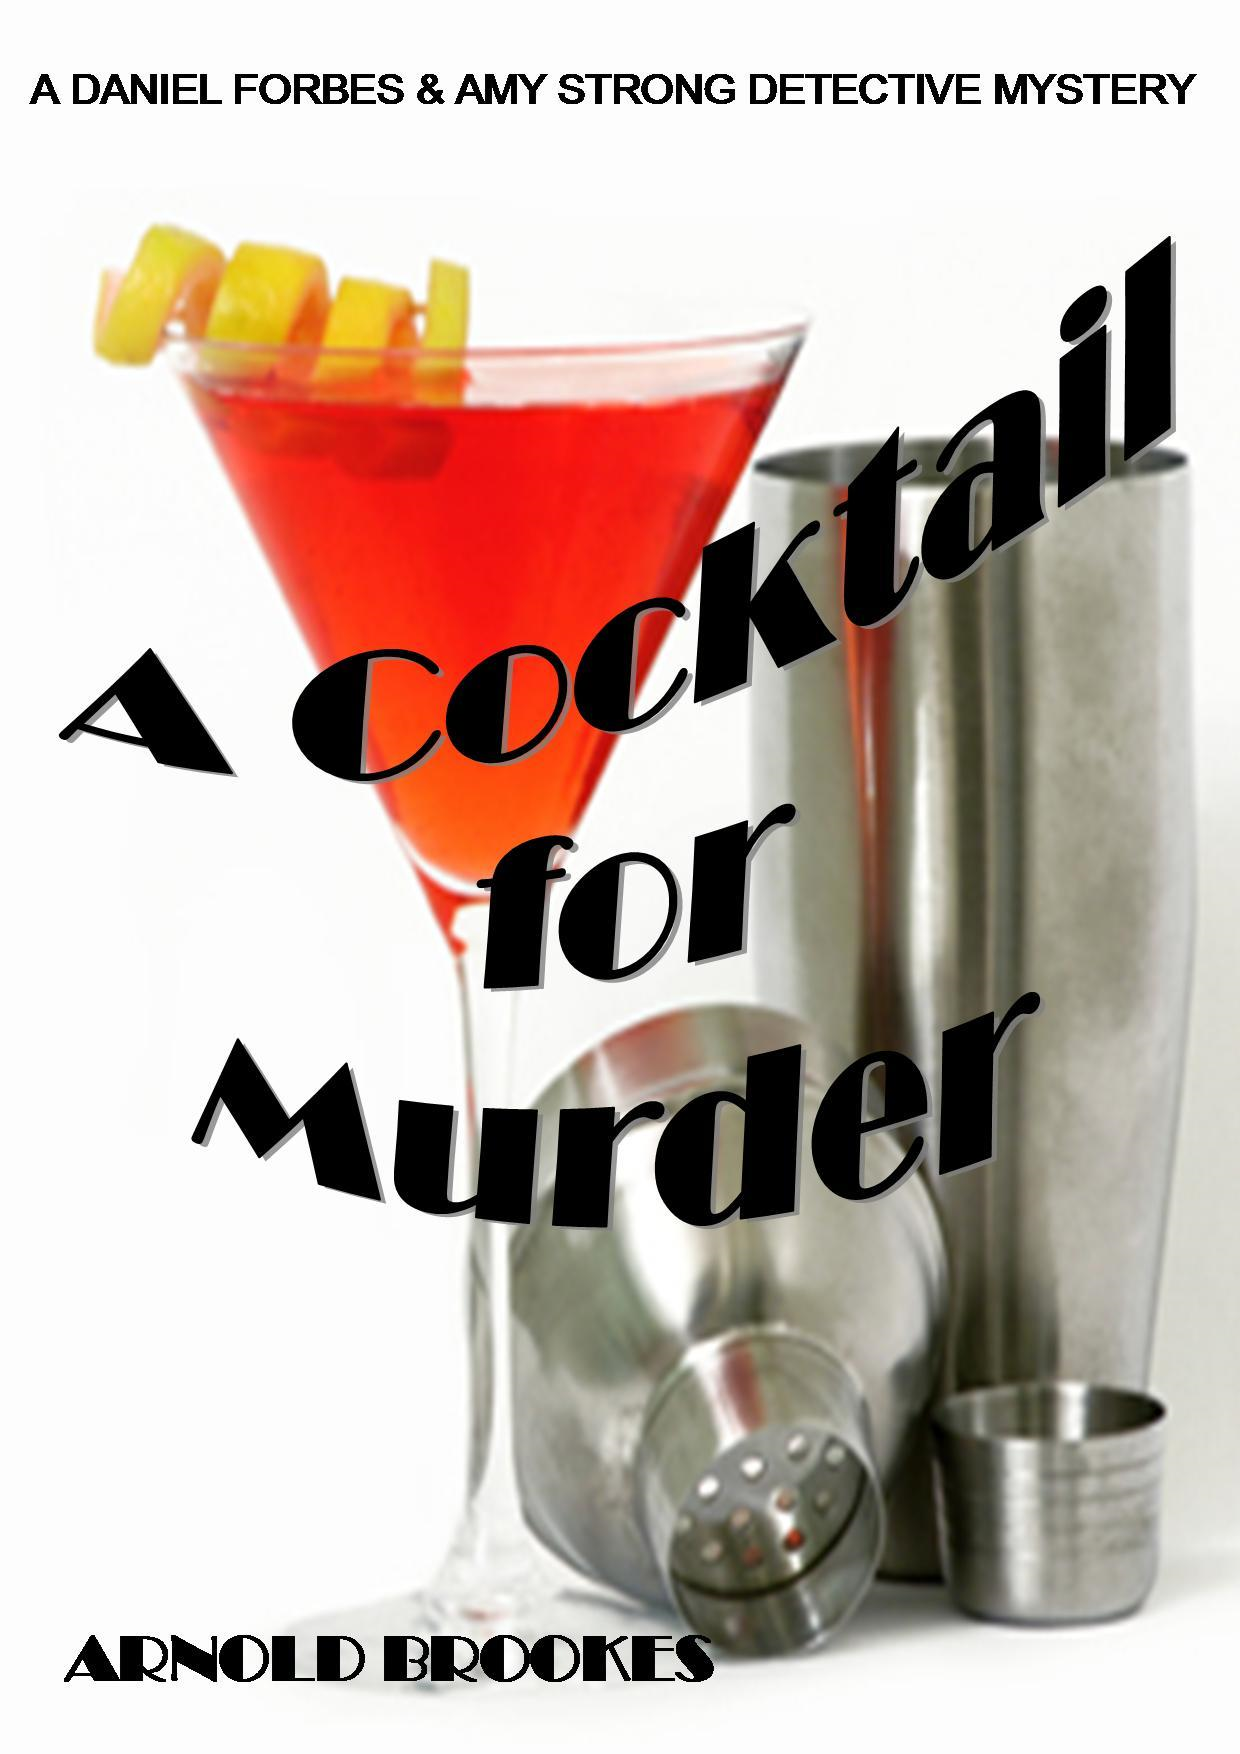 A COCKTAIL for MURDER